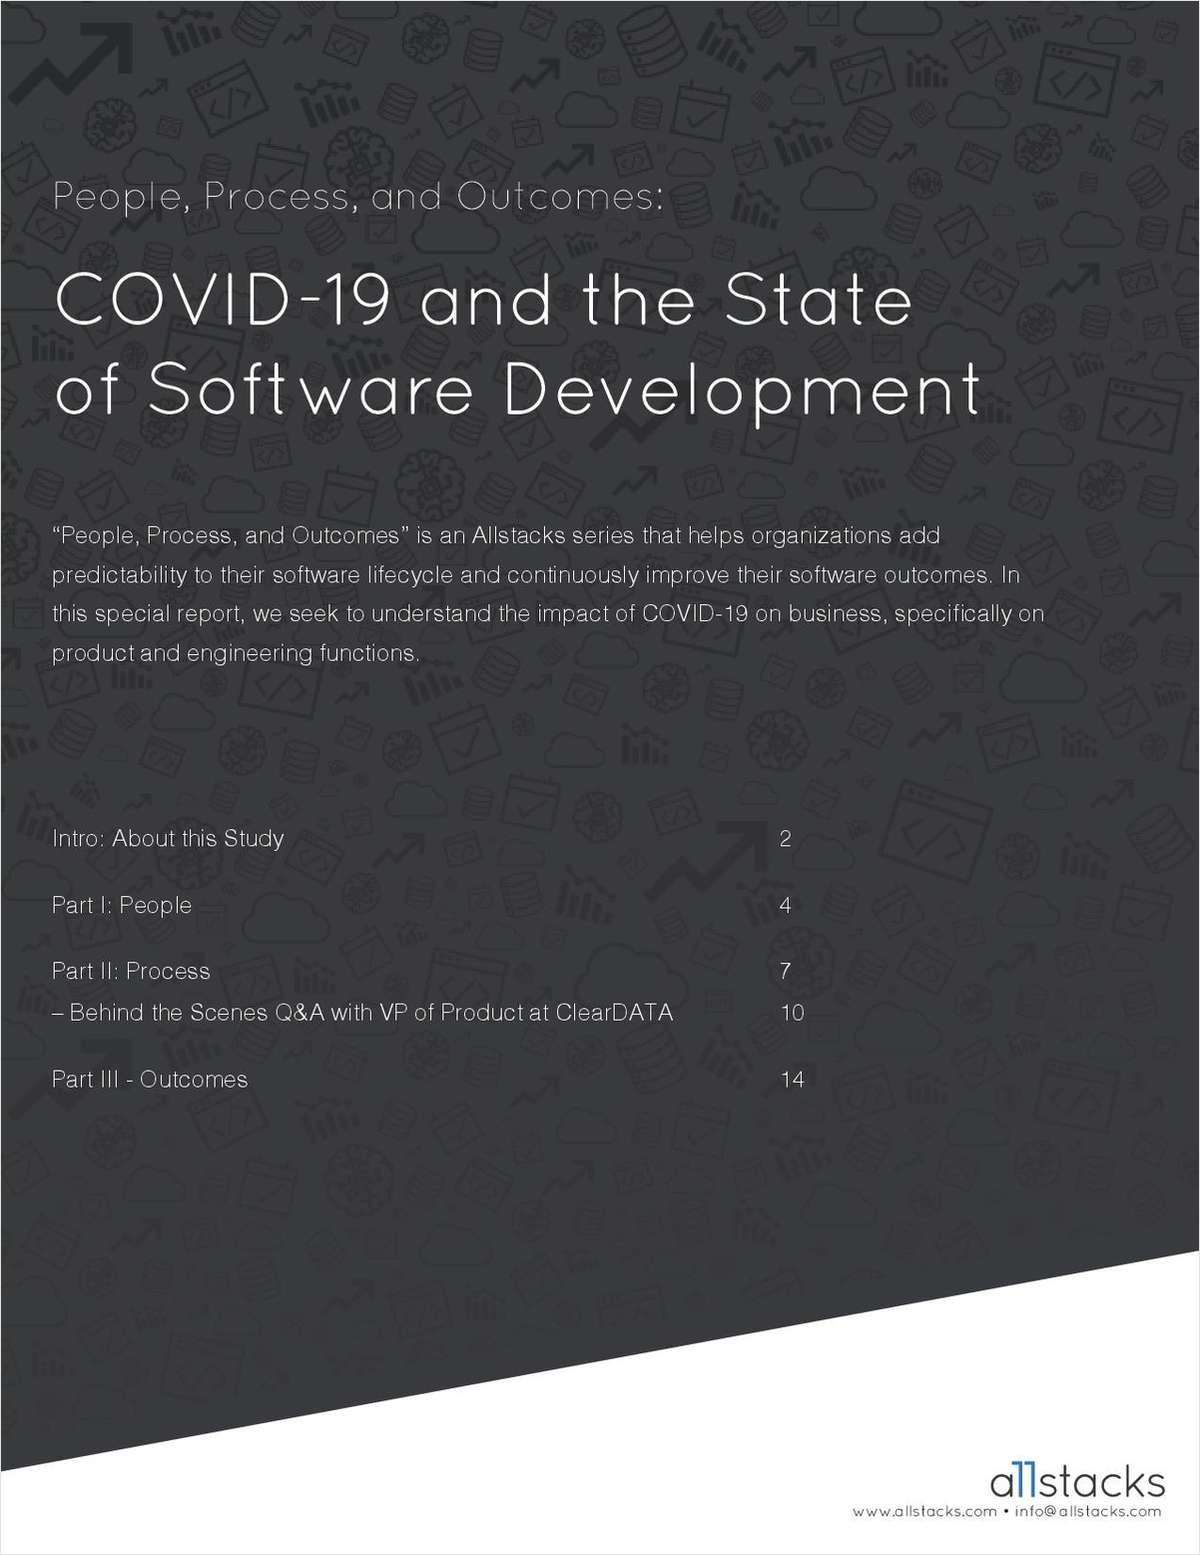 COVID-19 and State of Software Development Report